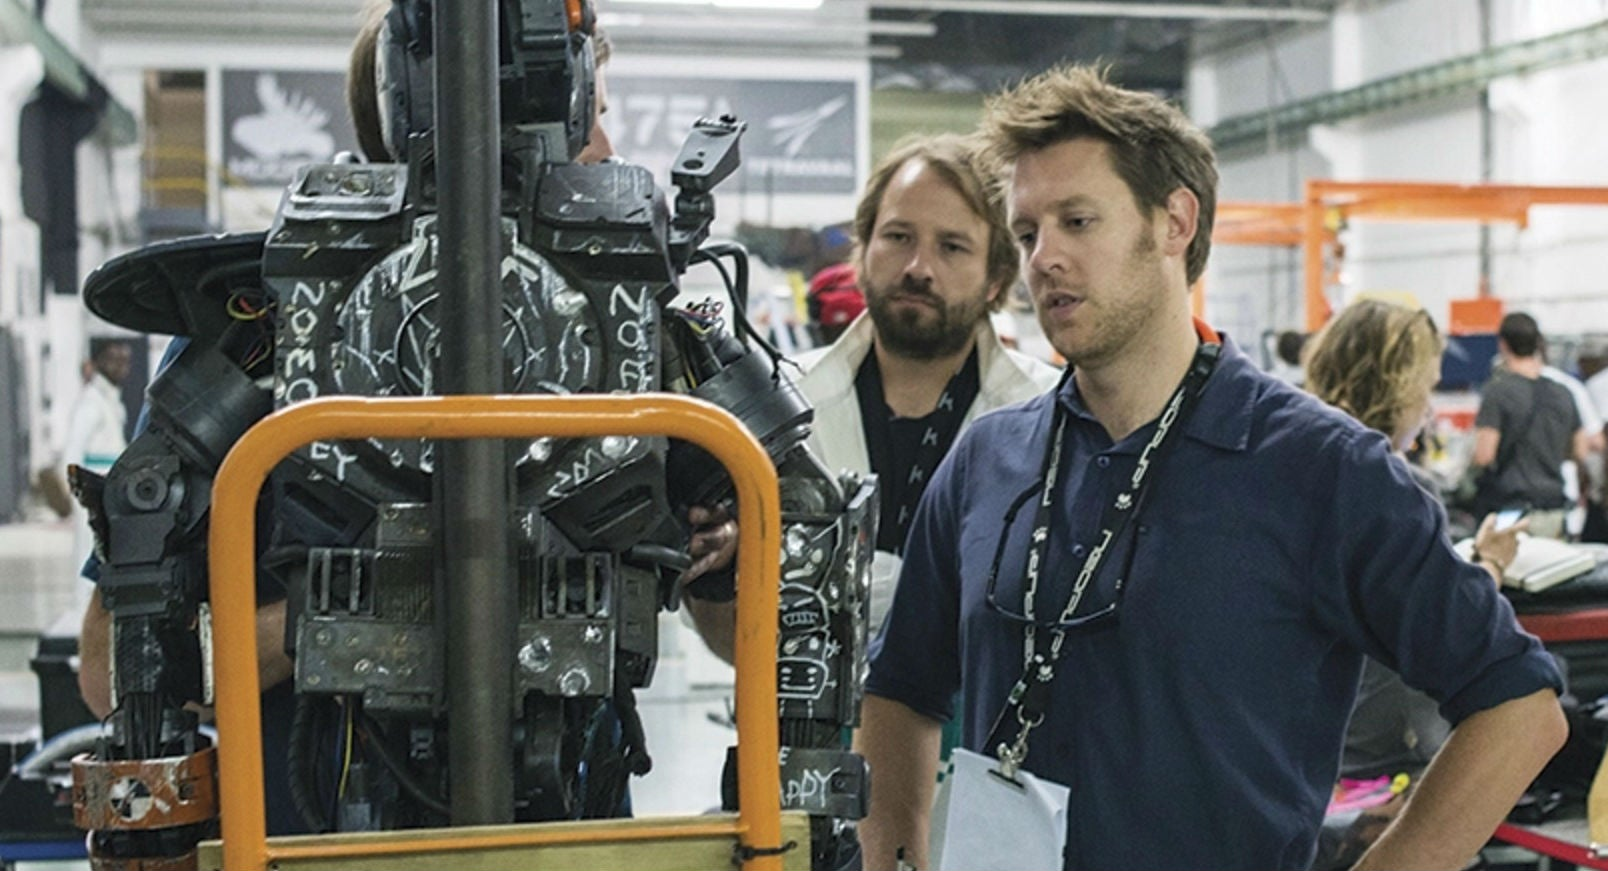 Neill Blomkamp Explains The Major Problems With His Film Chappie